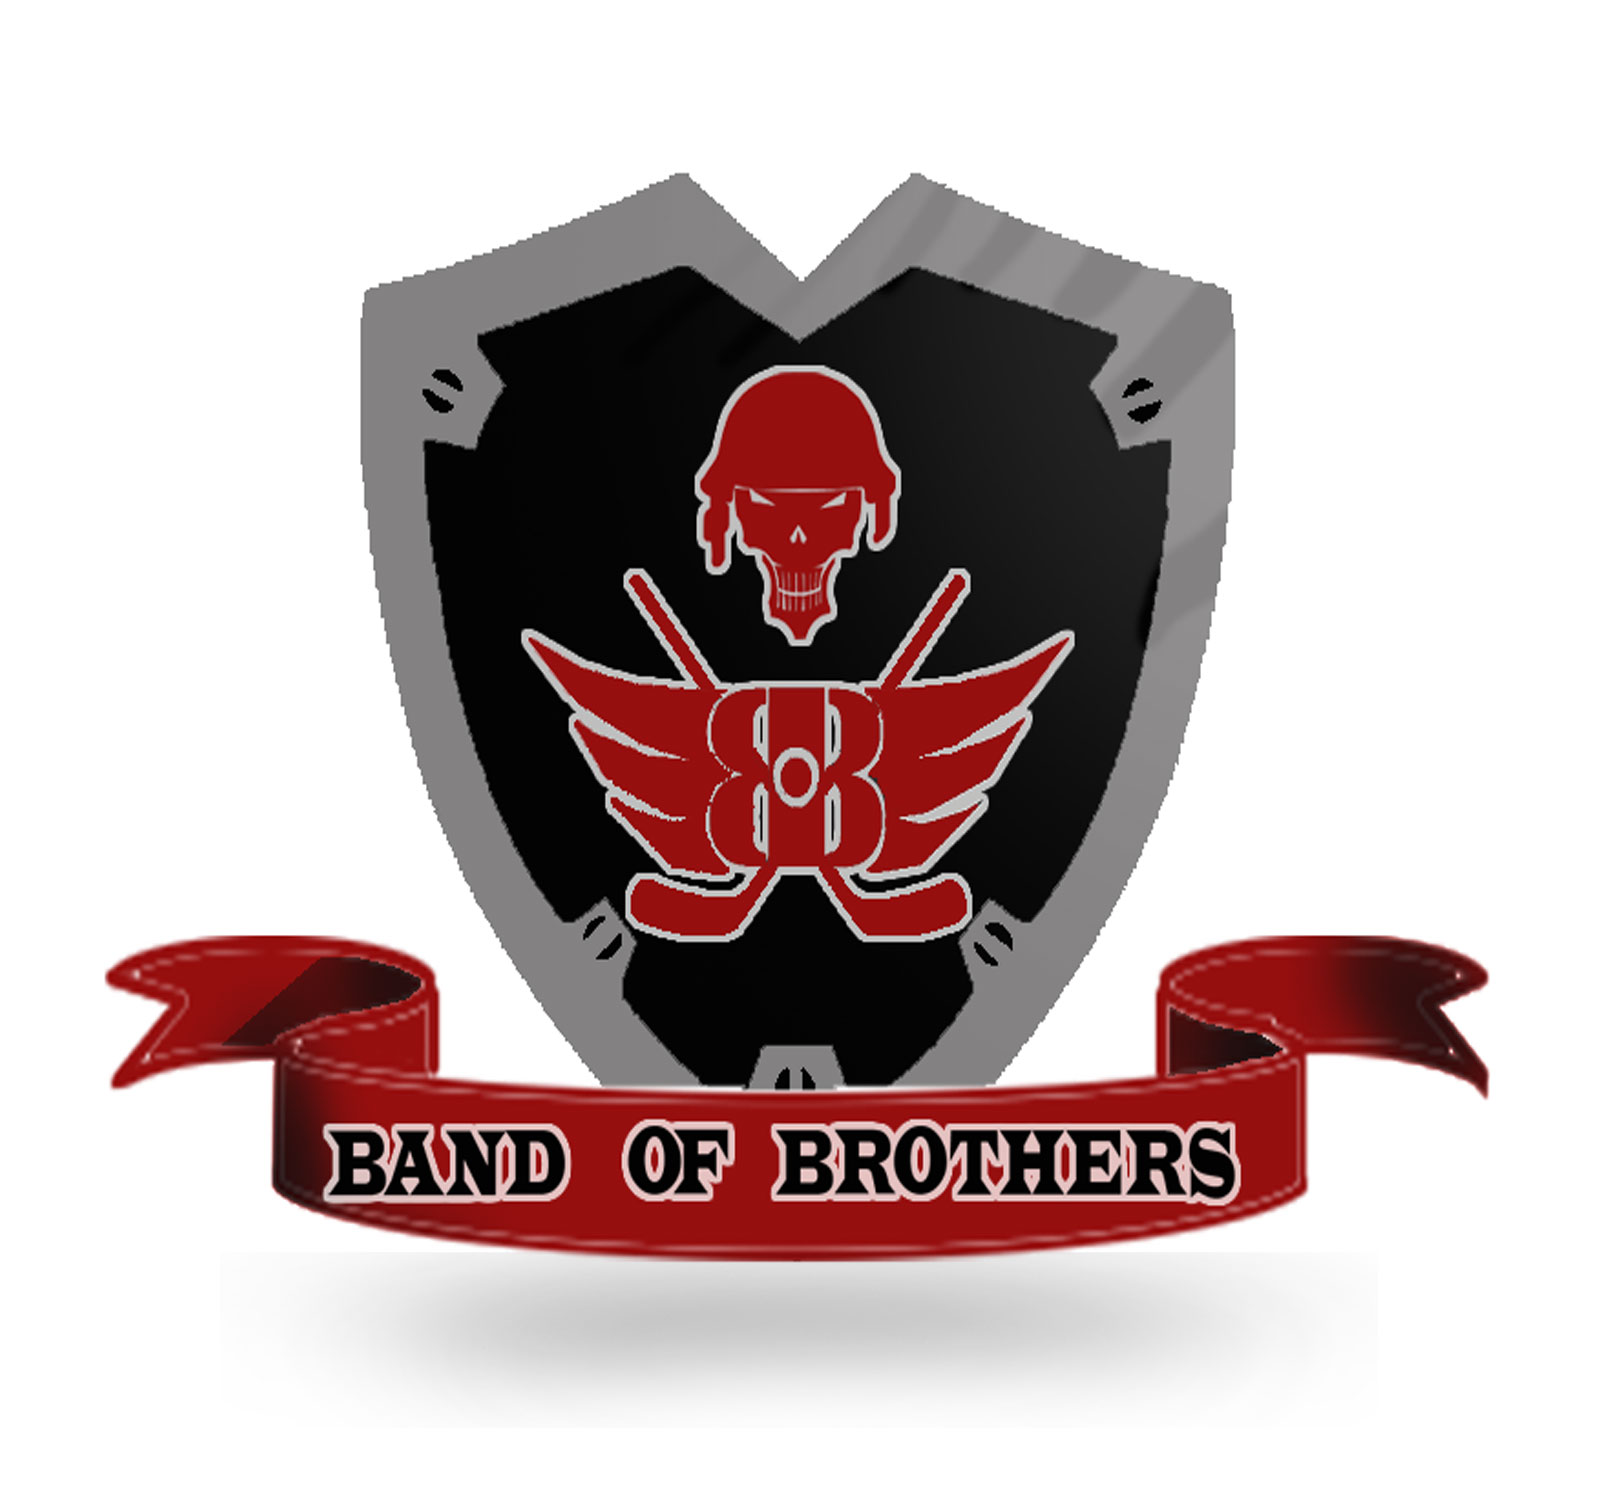 Logo Design by Vem Johnmar Pato - Entry No. 41 in the Logo Design Contest Inspiring Logo Design for Band of Brothers.